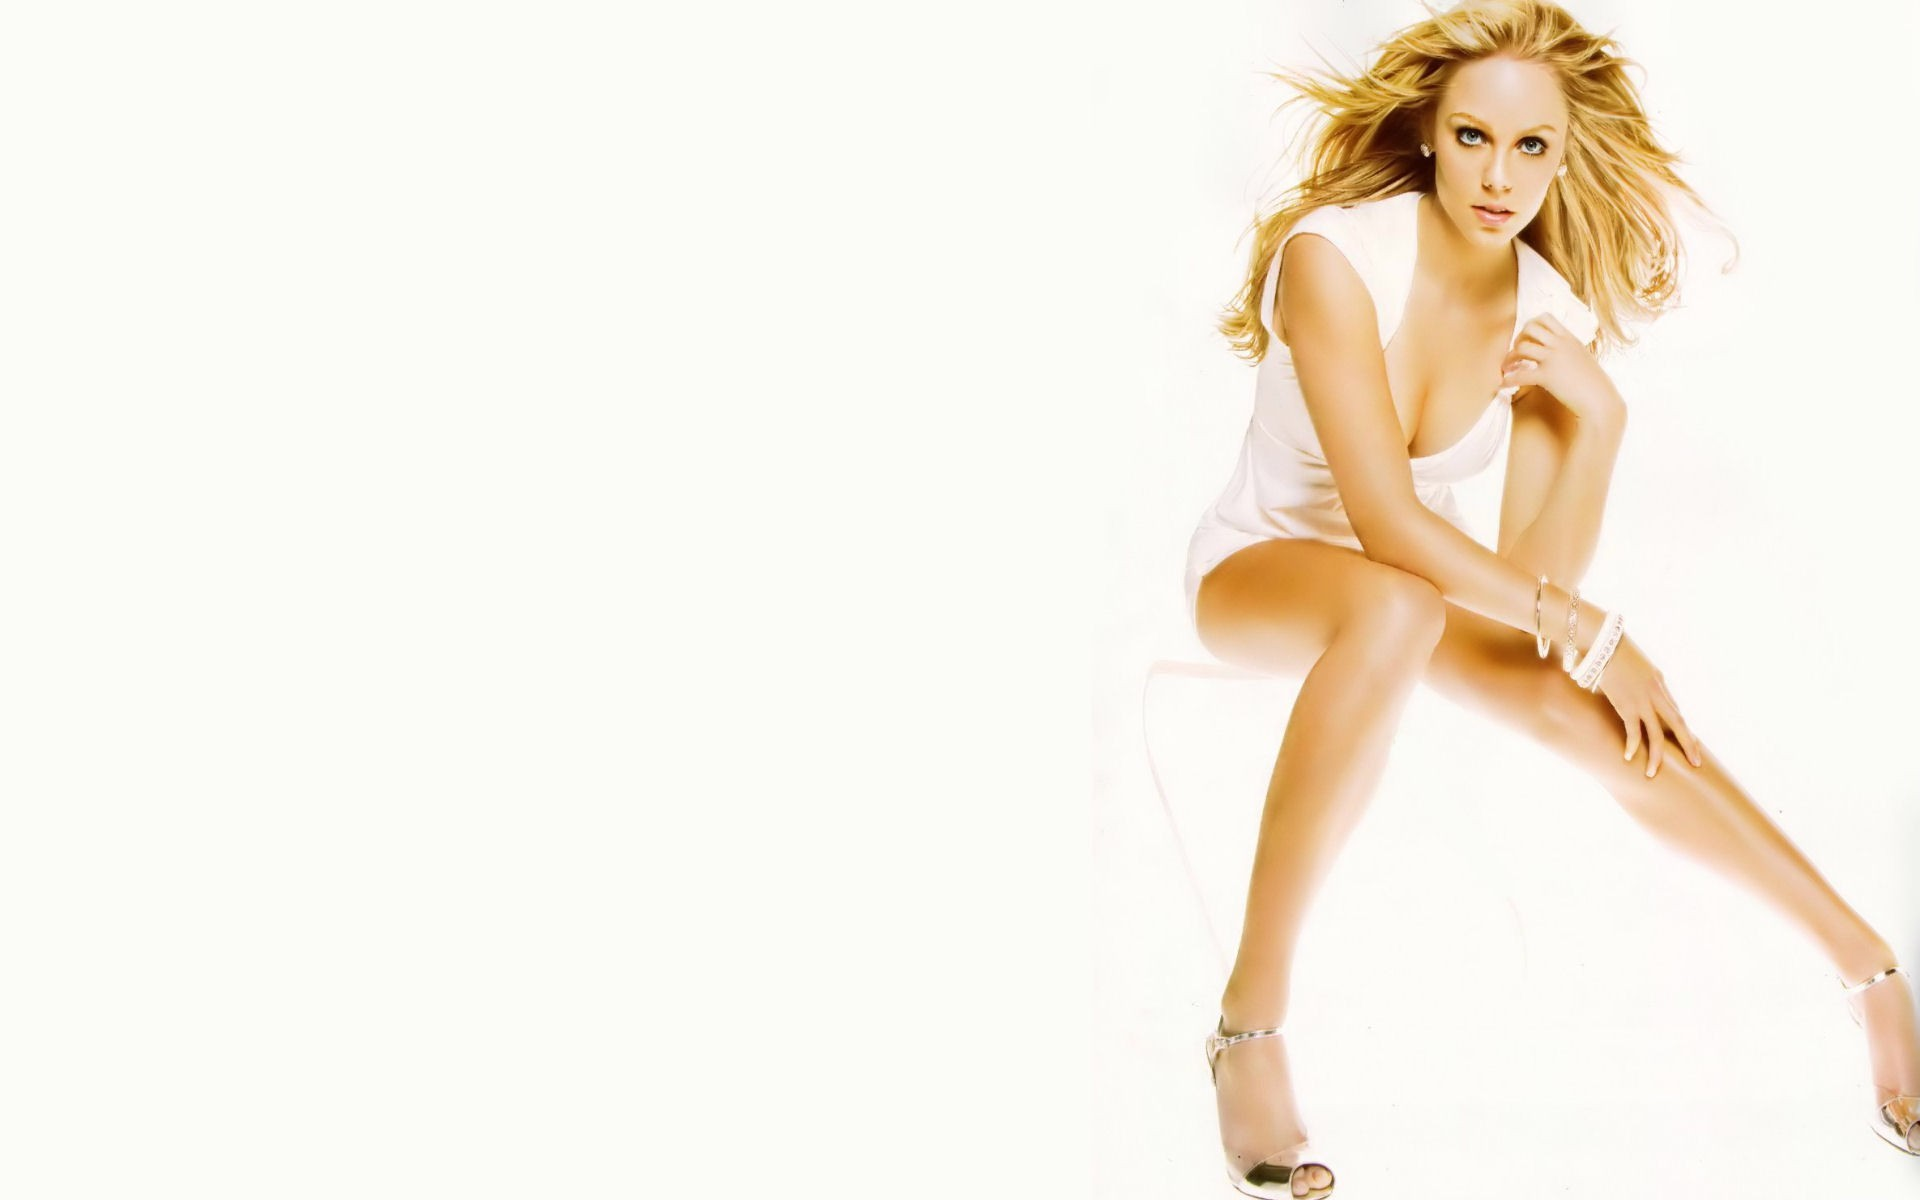 woman Laura Vandervoort bracelets HD Wallpaper